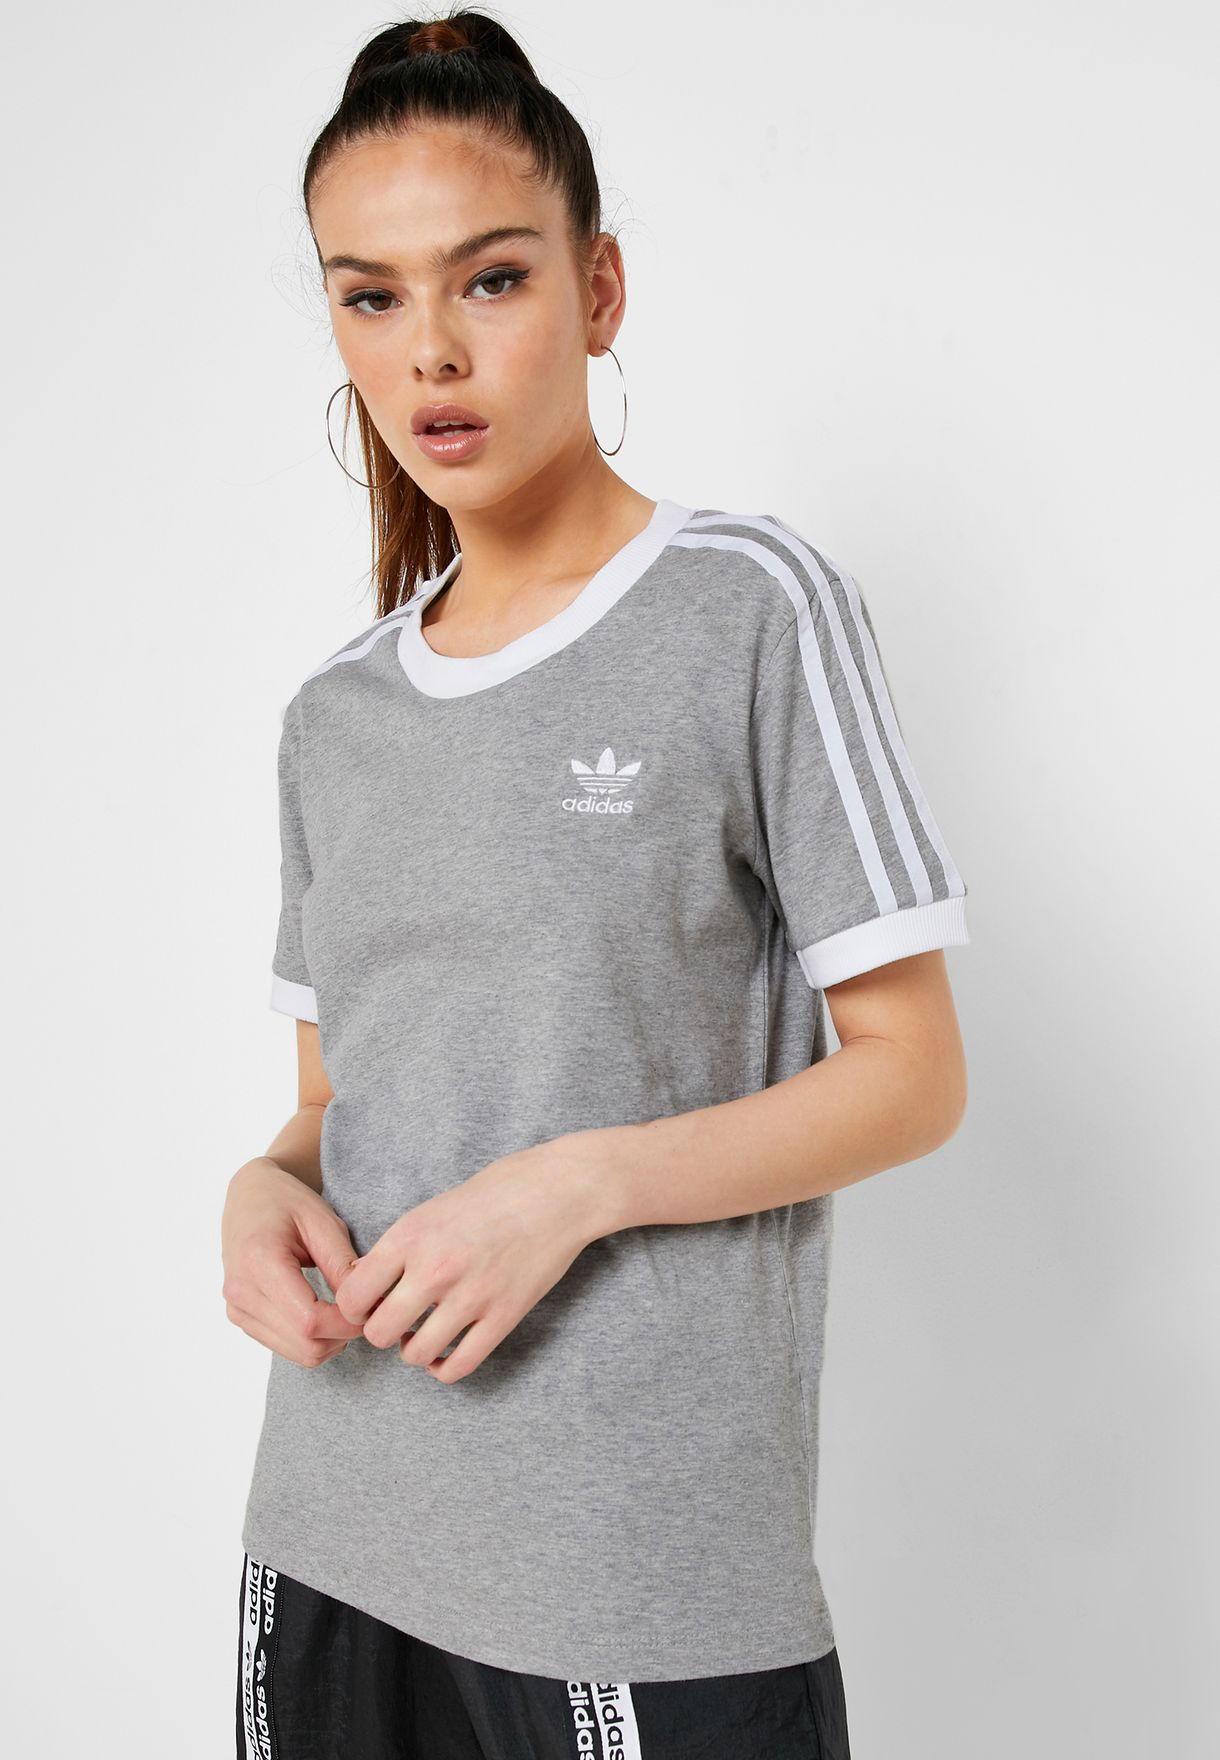 3 Stripes Adicolor Casual Women's T-Shirt